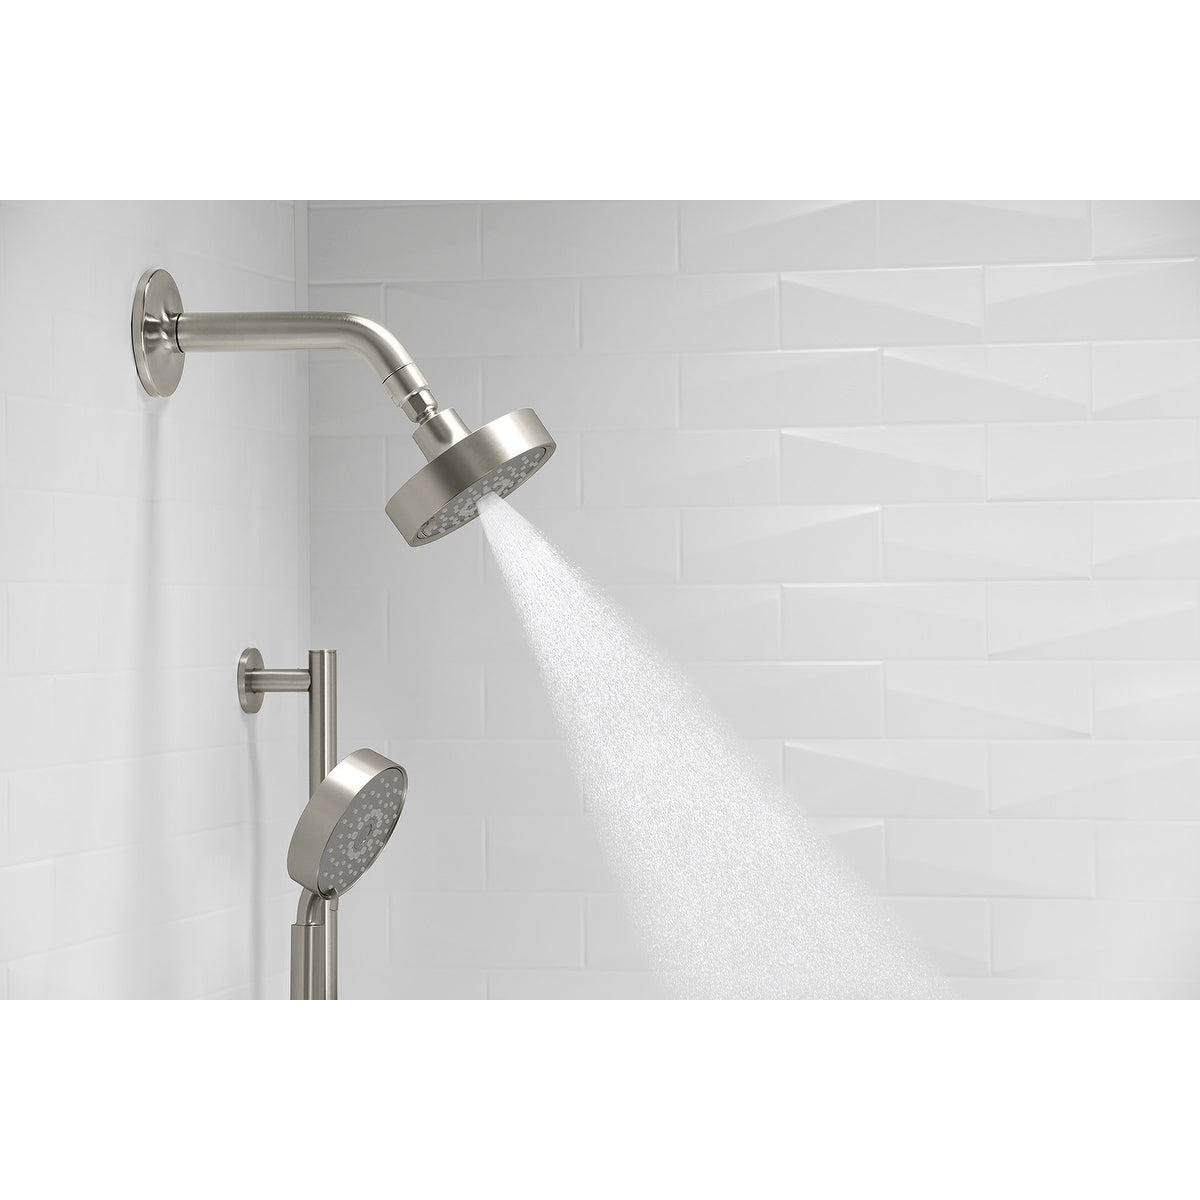 Kohler K 22170 Purist 2 5 Gpm Multi Function Shower Head